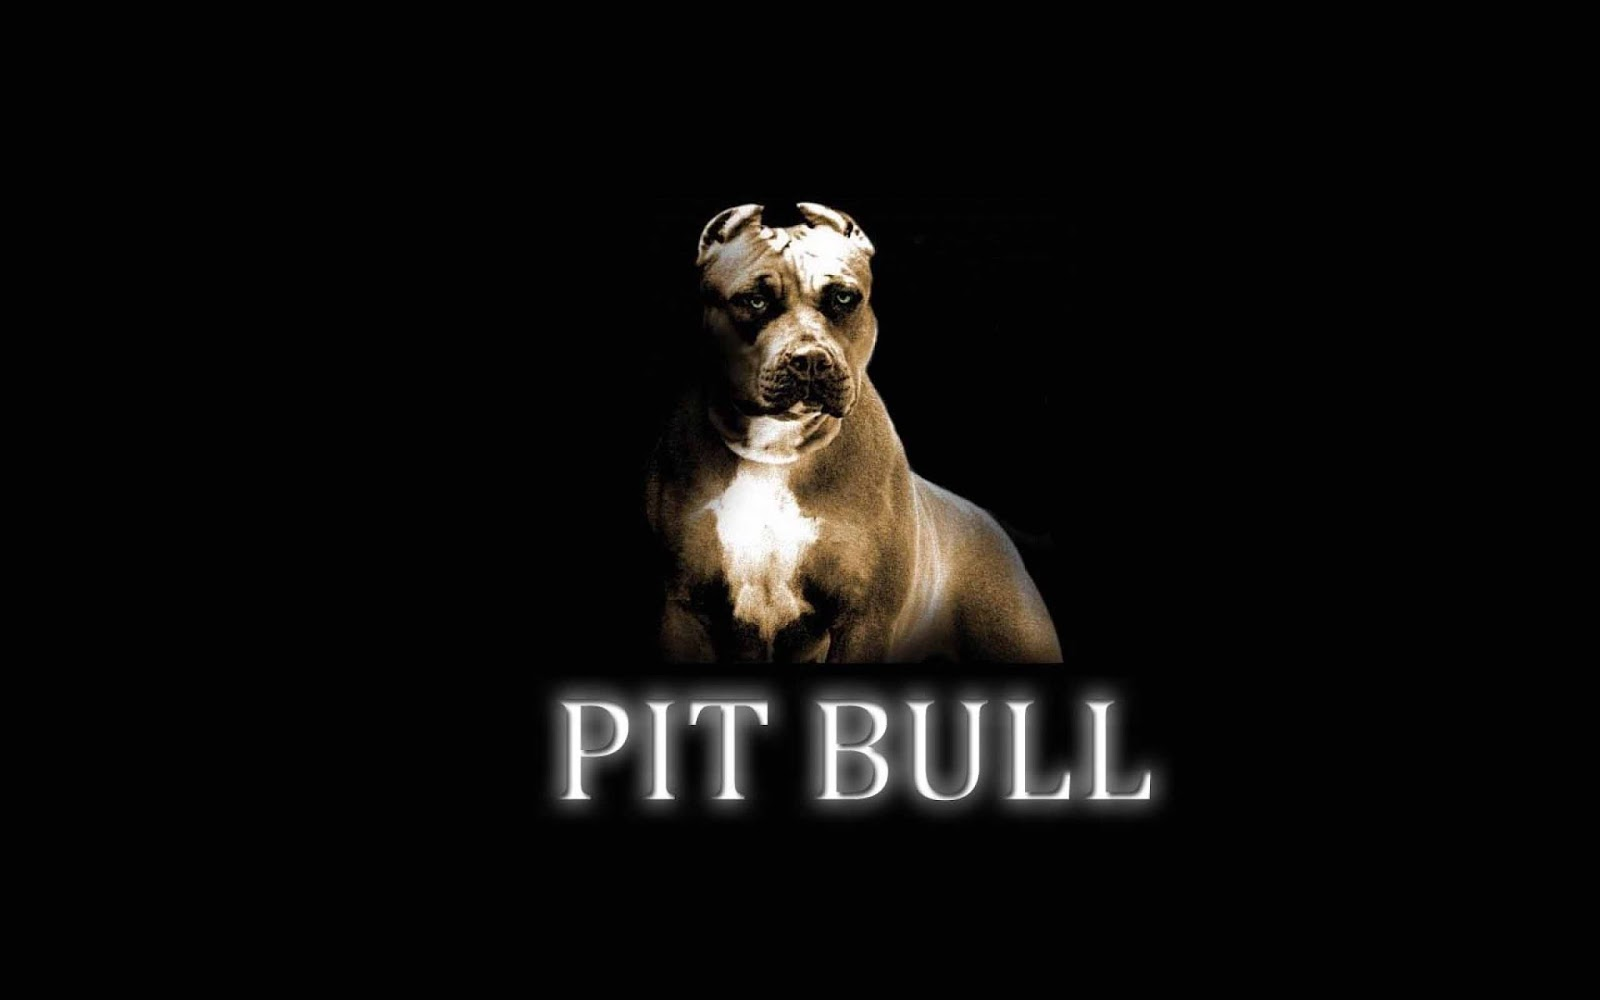 Pitbull Dog Wallpaper